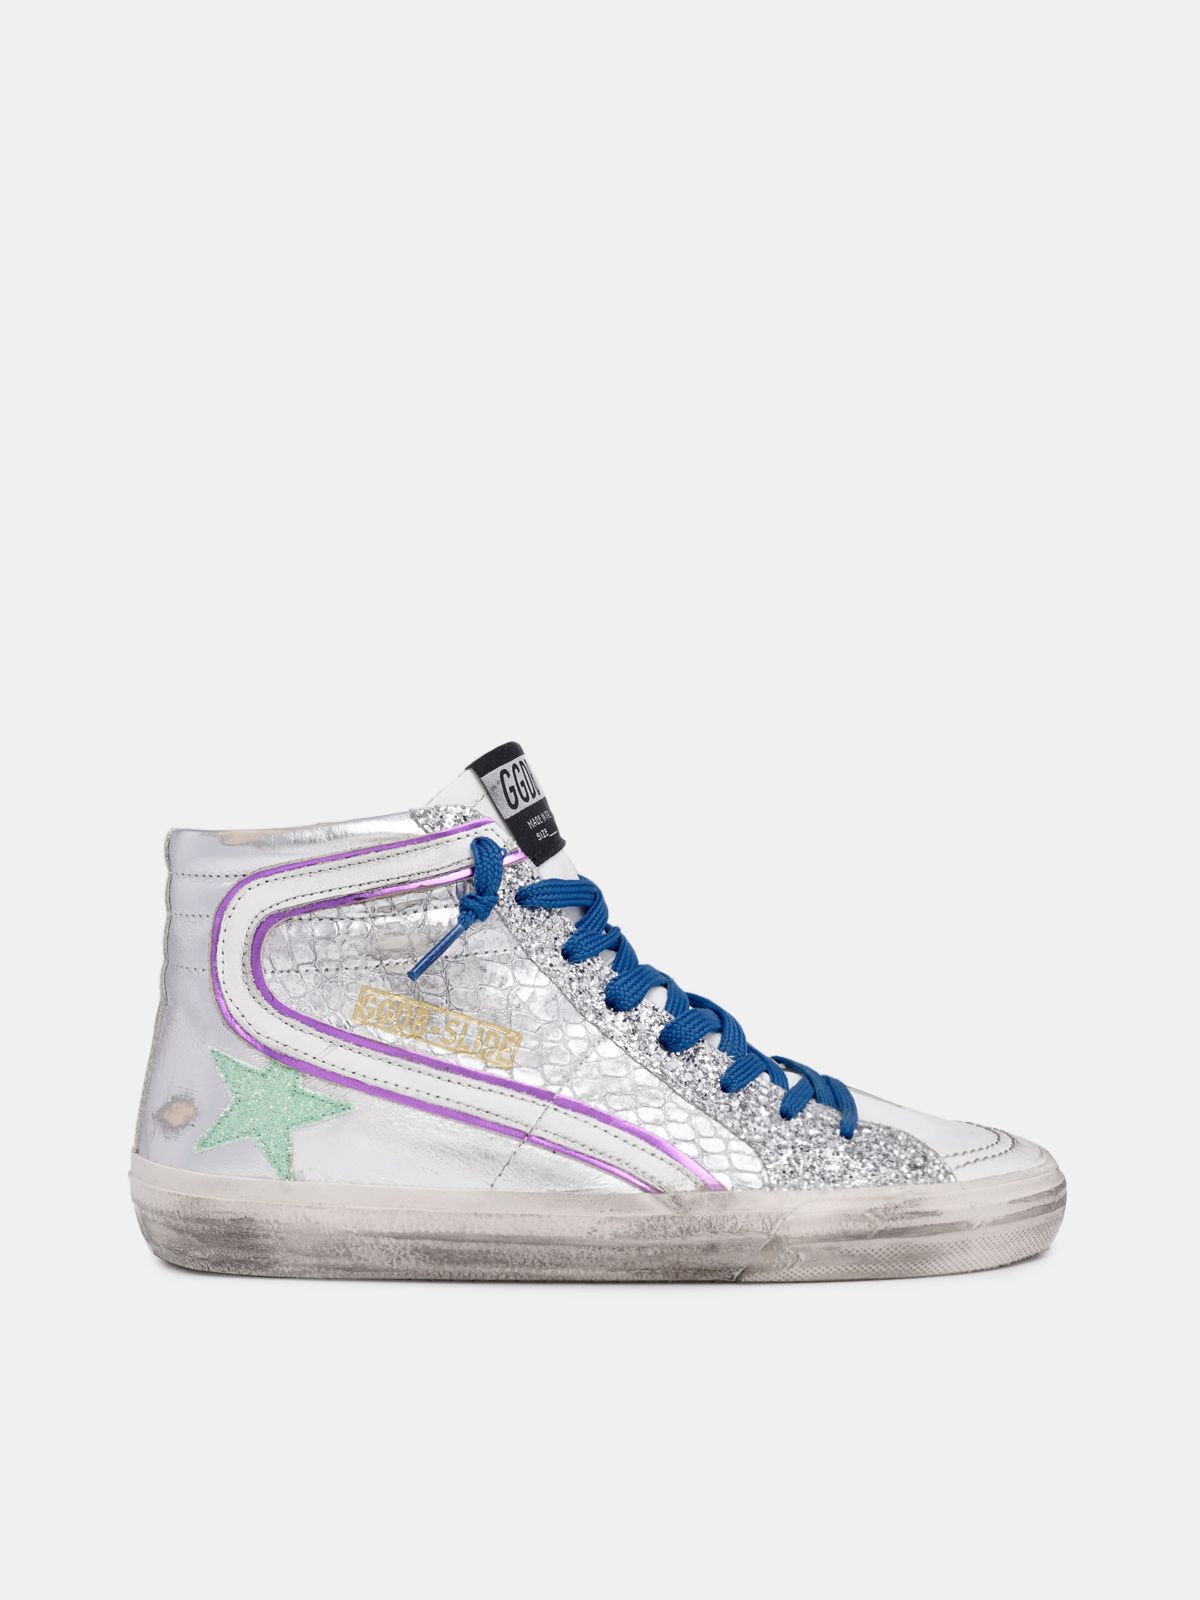 Silver Slide sneakers with glitter